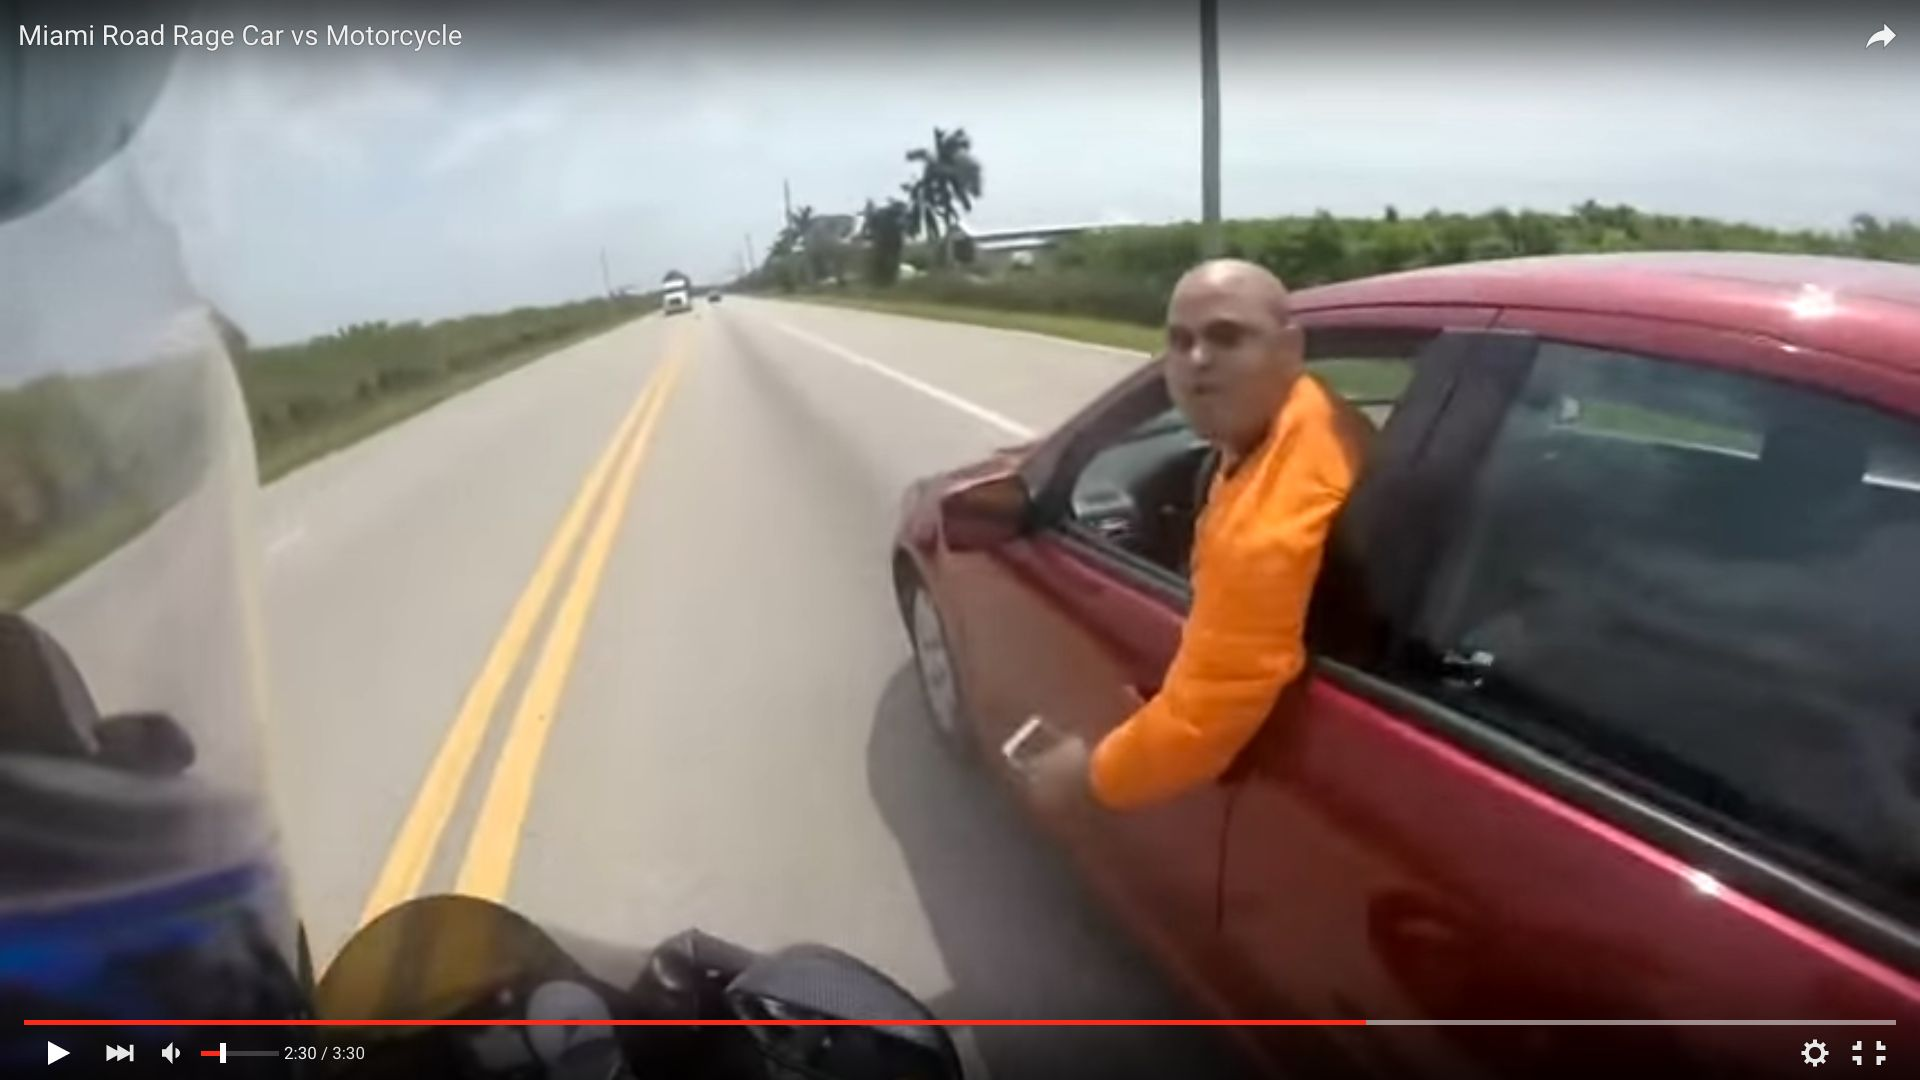 A man is seen trying to run a motorcyclist off a Florida road during a dangerous road rage battle Monday.